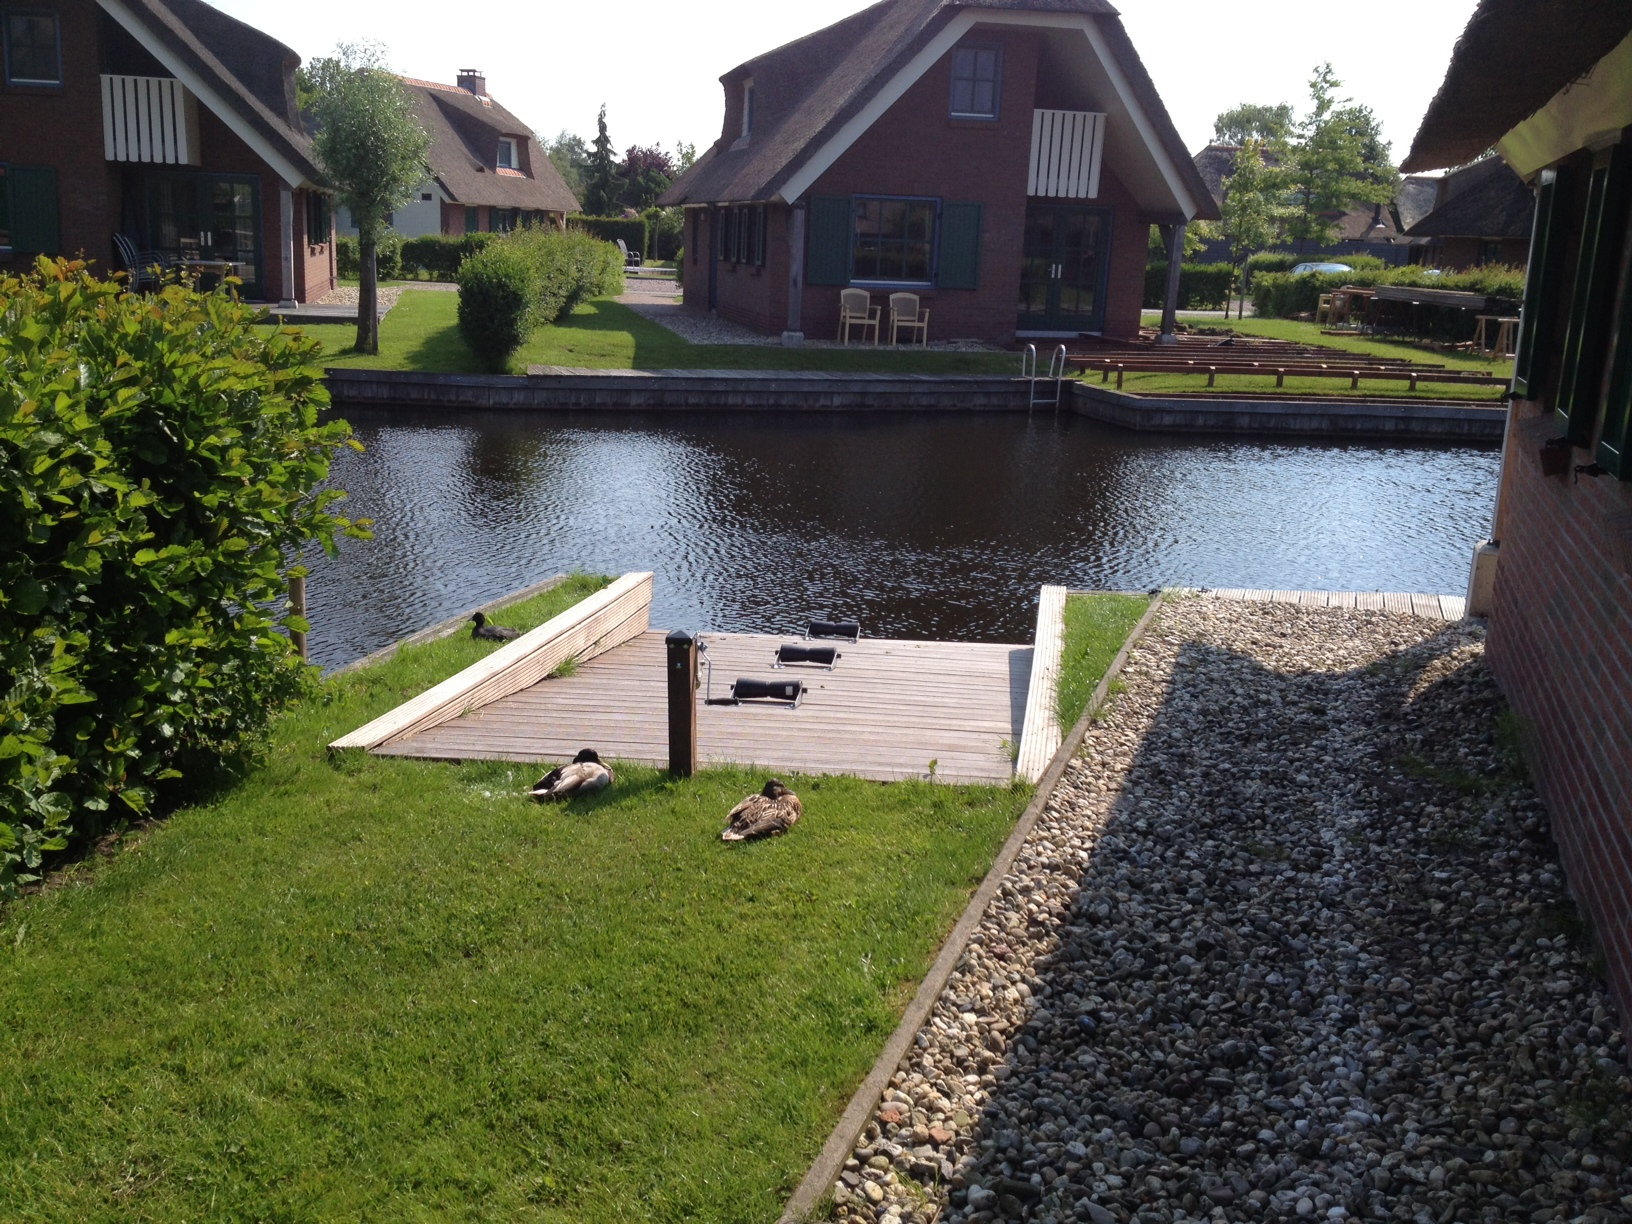 wannerperveen-begin-juni-2013-15